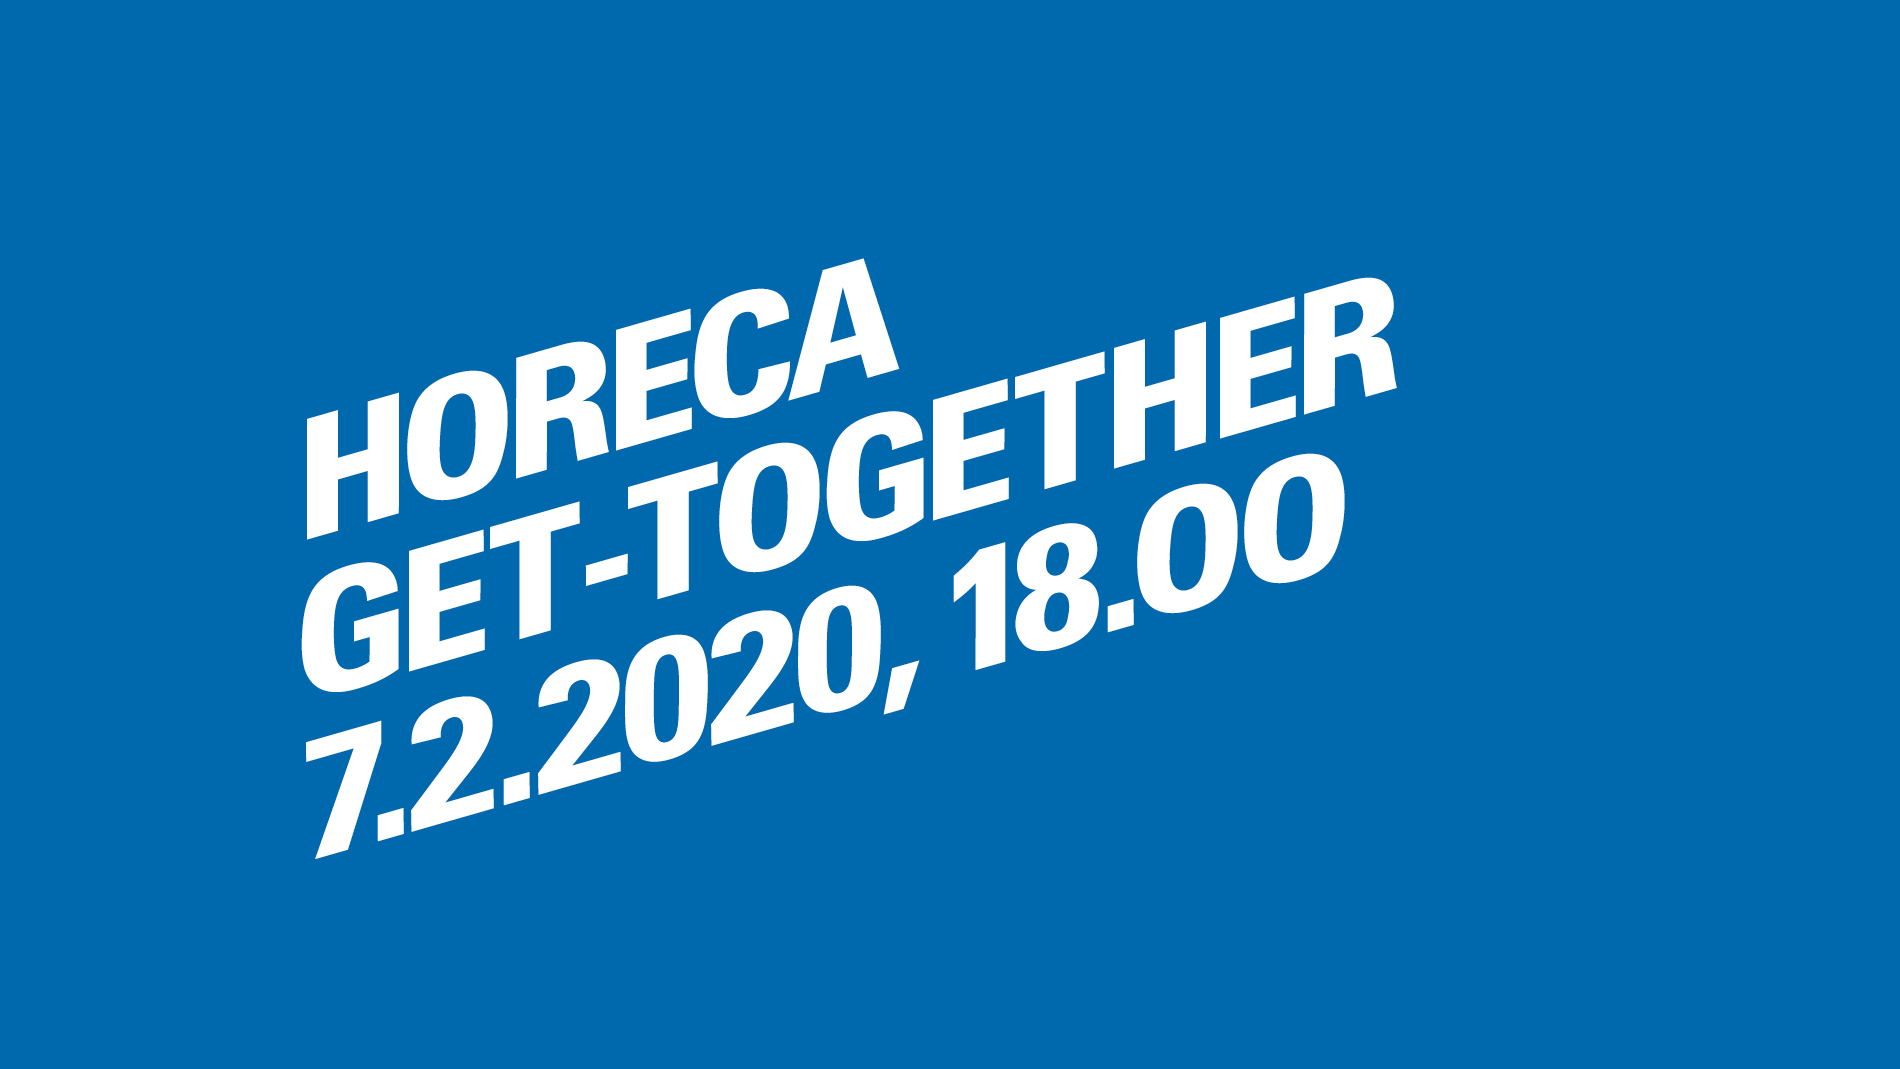 HoReCa Get-together